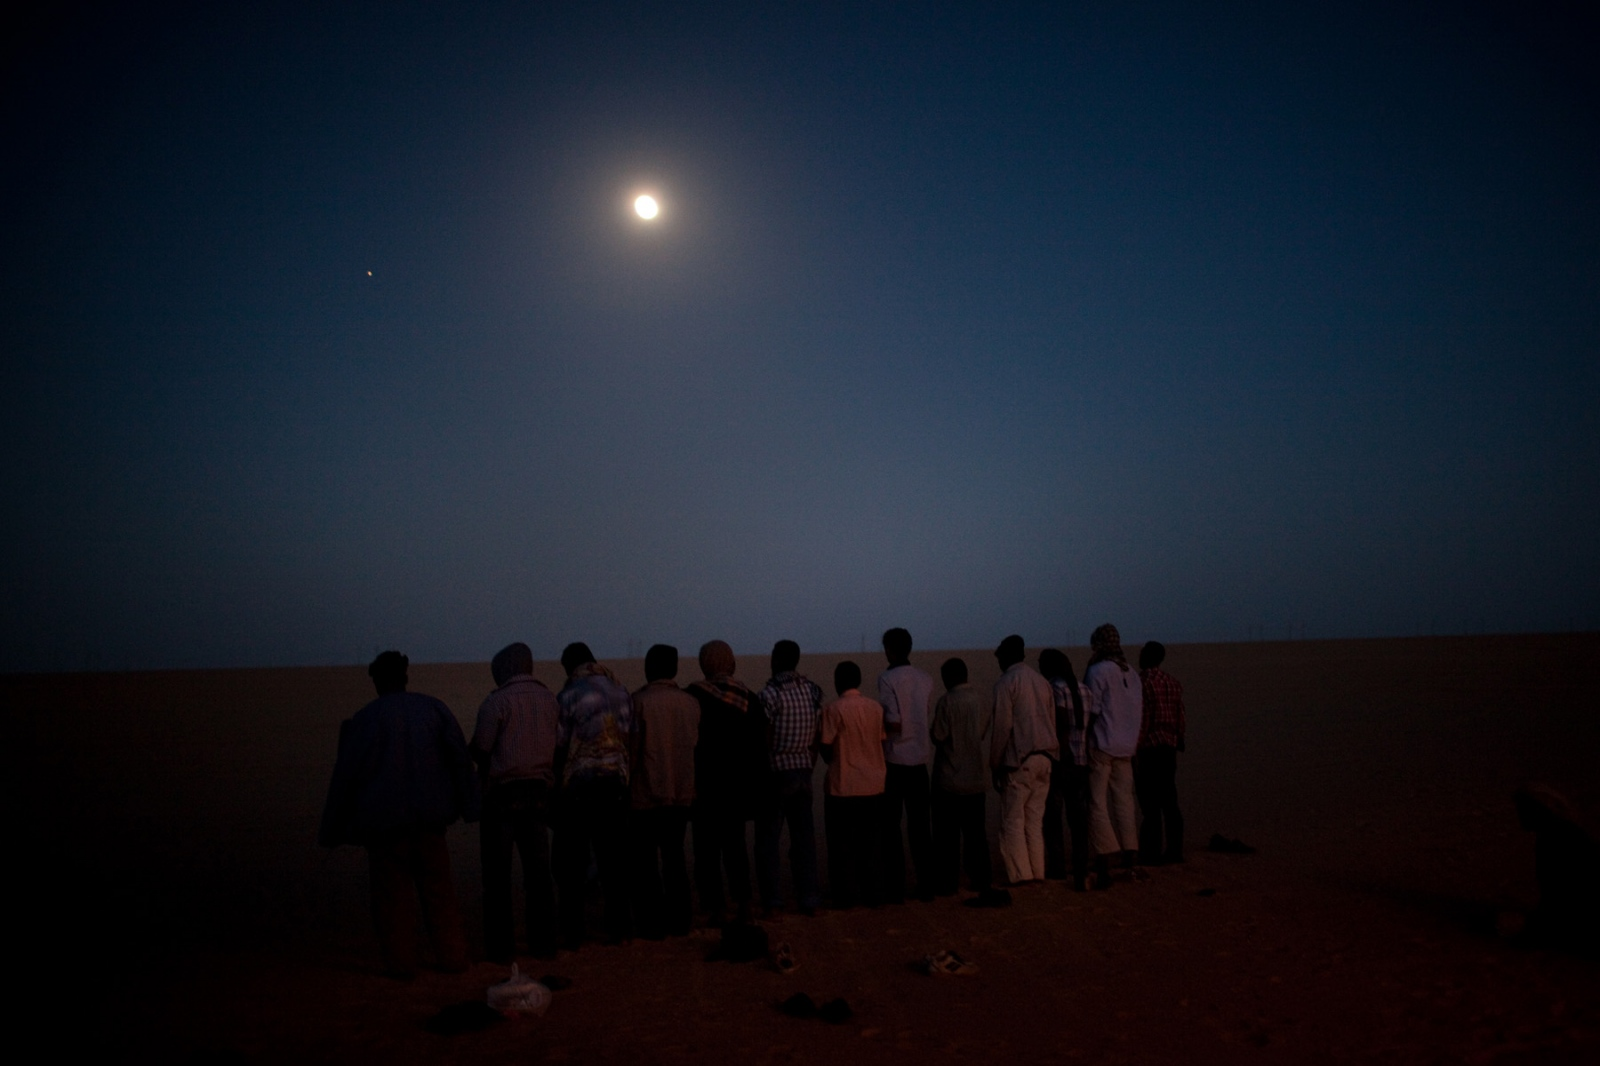 Muslim migrants gather for evening prayers off the side of the road en route to Ajdabiya, from Kufra, southern Libya on March 7, 2012.